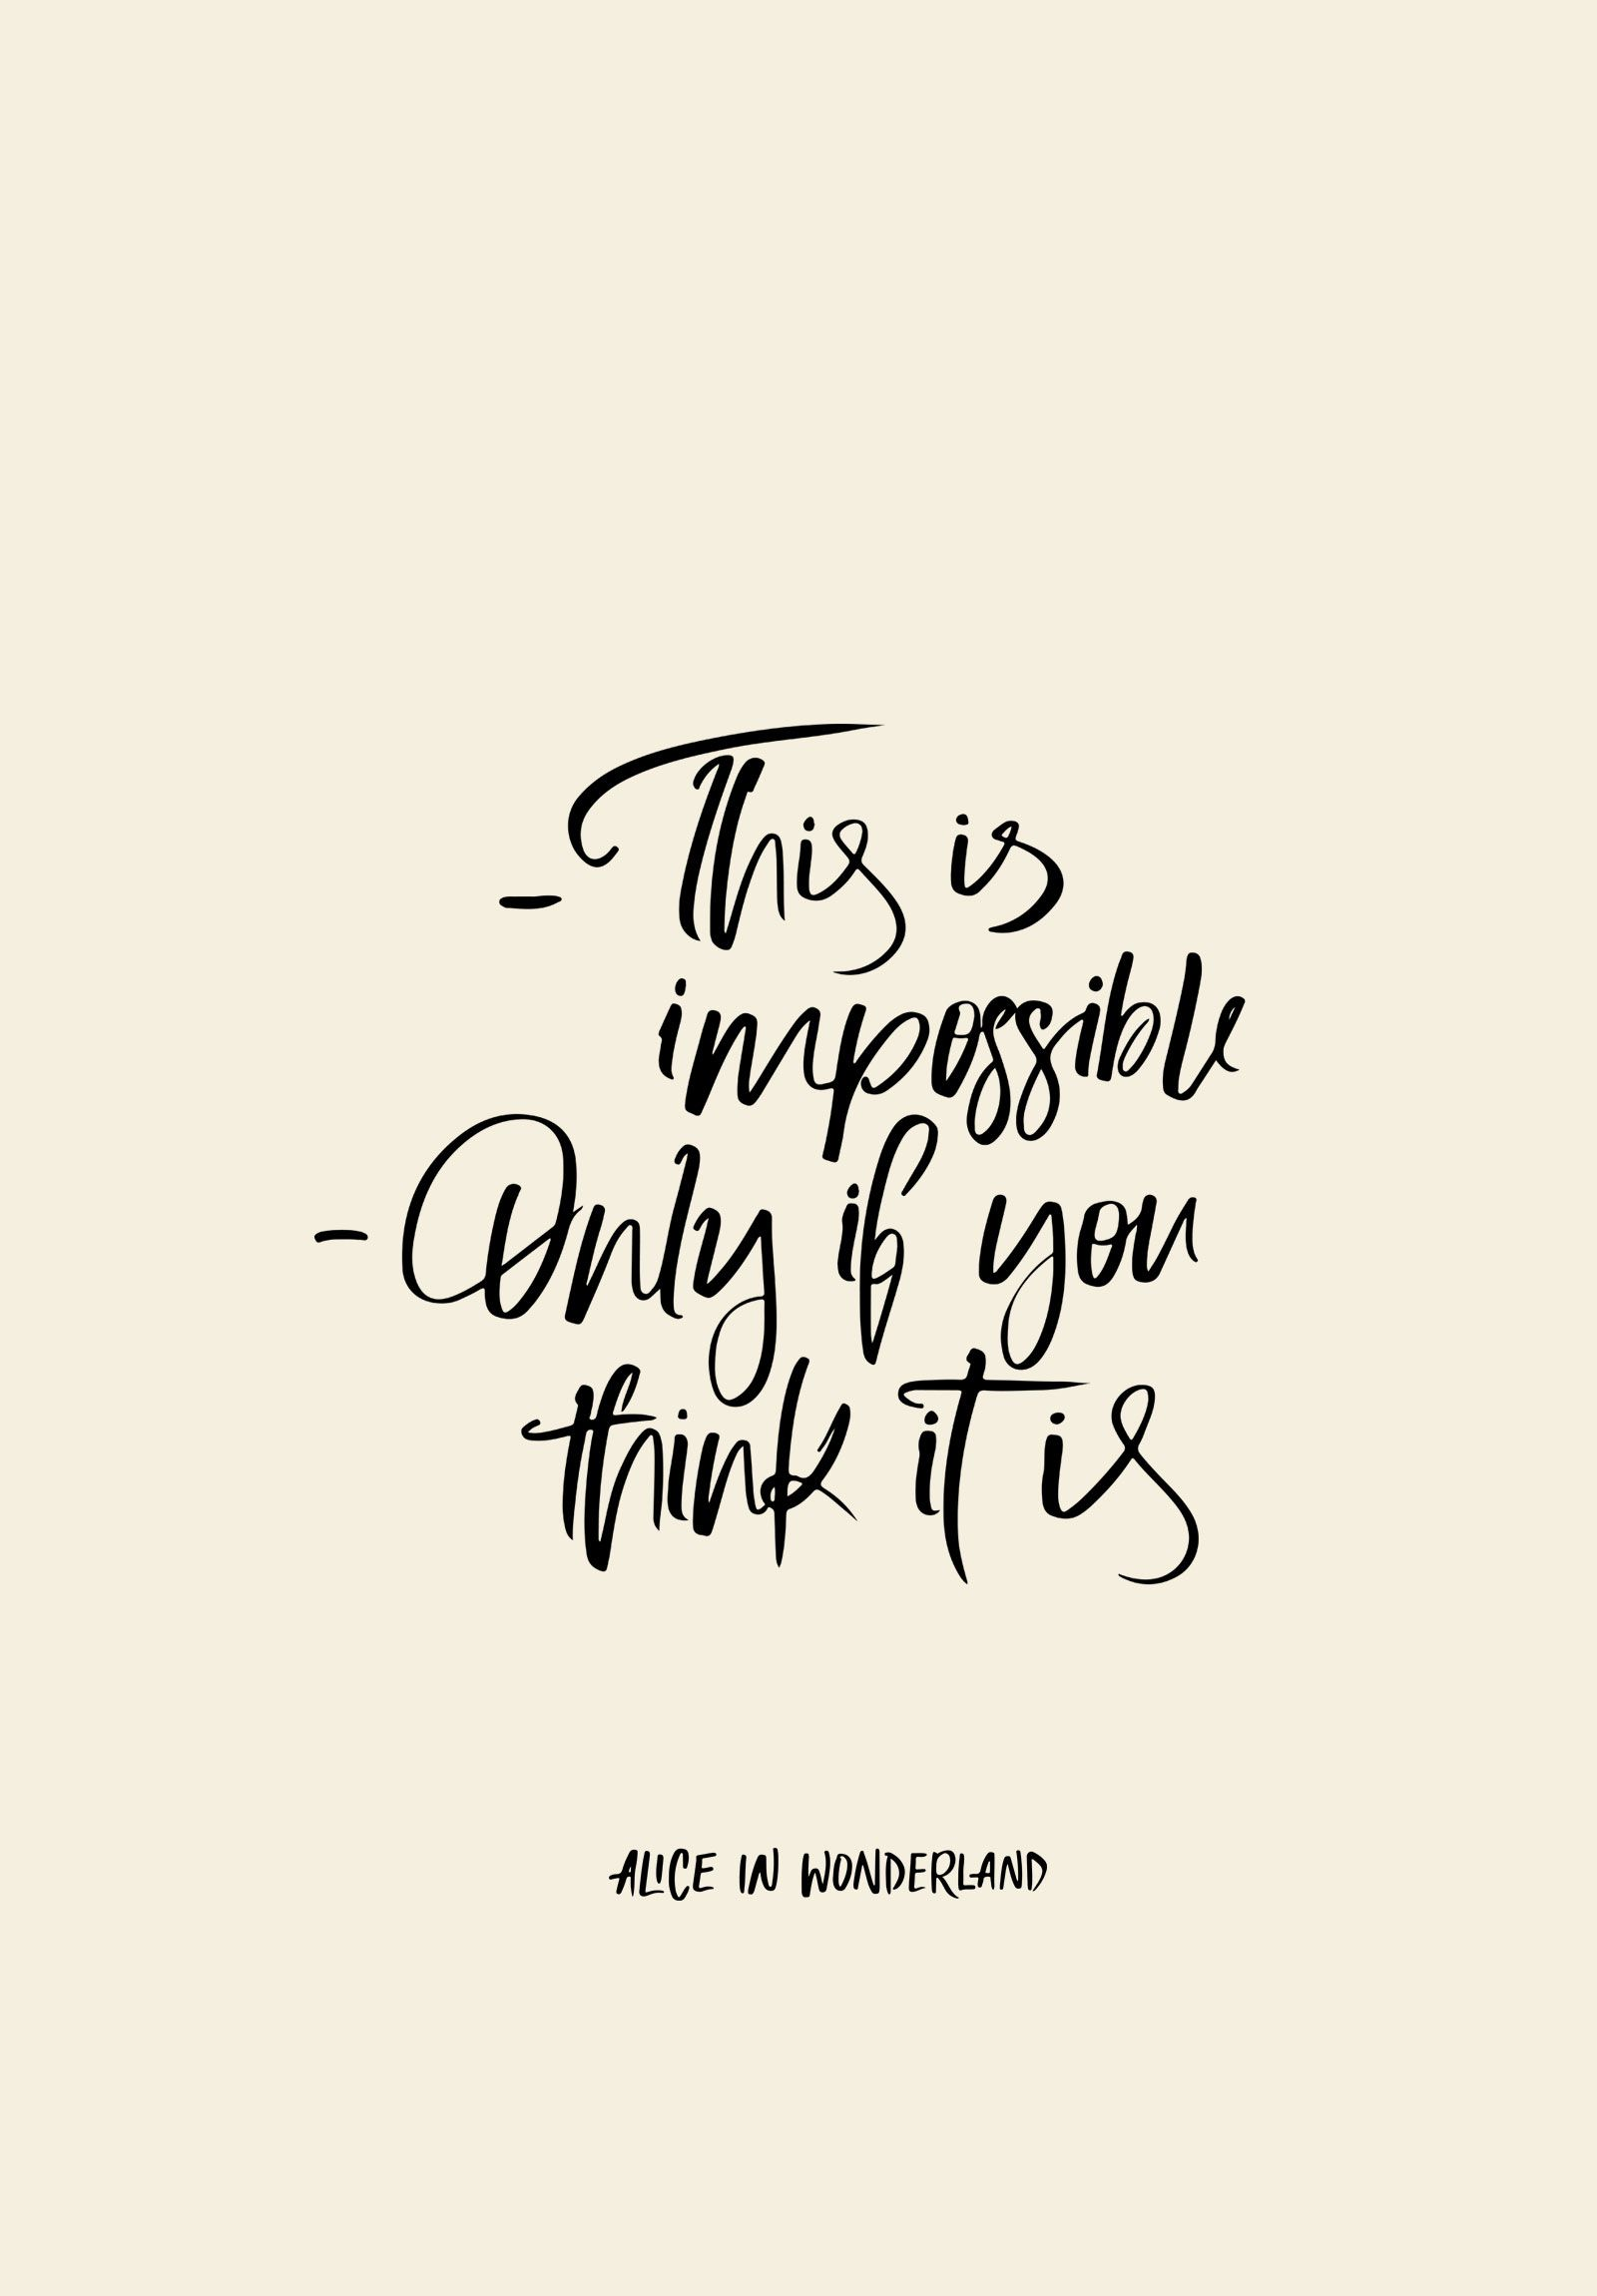 From Alice In Wonderland EVERYTHING IS POSSIBLE